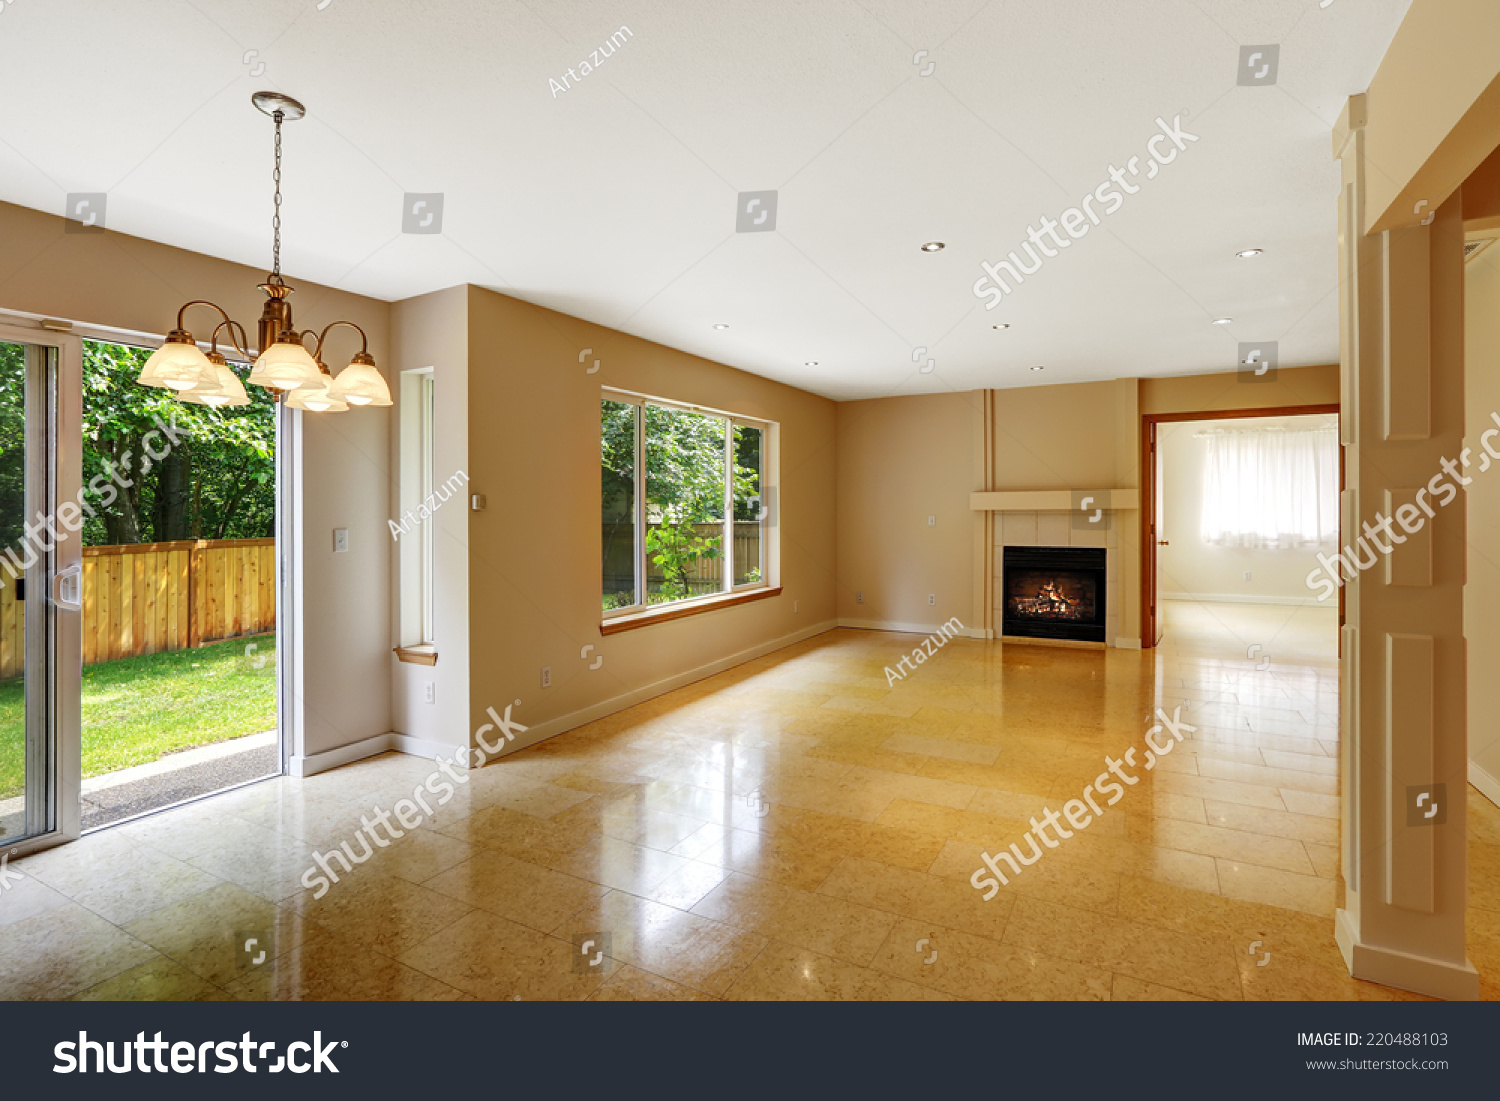 Empty living room shiny marble tile stock photo 220488103 empty living room with shiny marble tile floor and fireplace room has exit to backyard doublecrazyfo Image collections